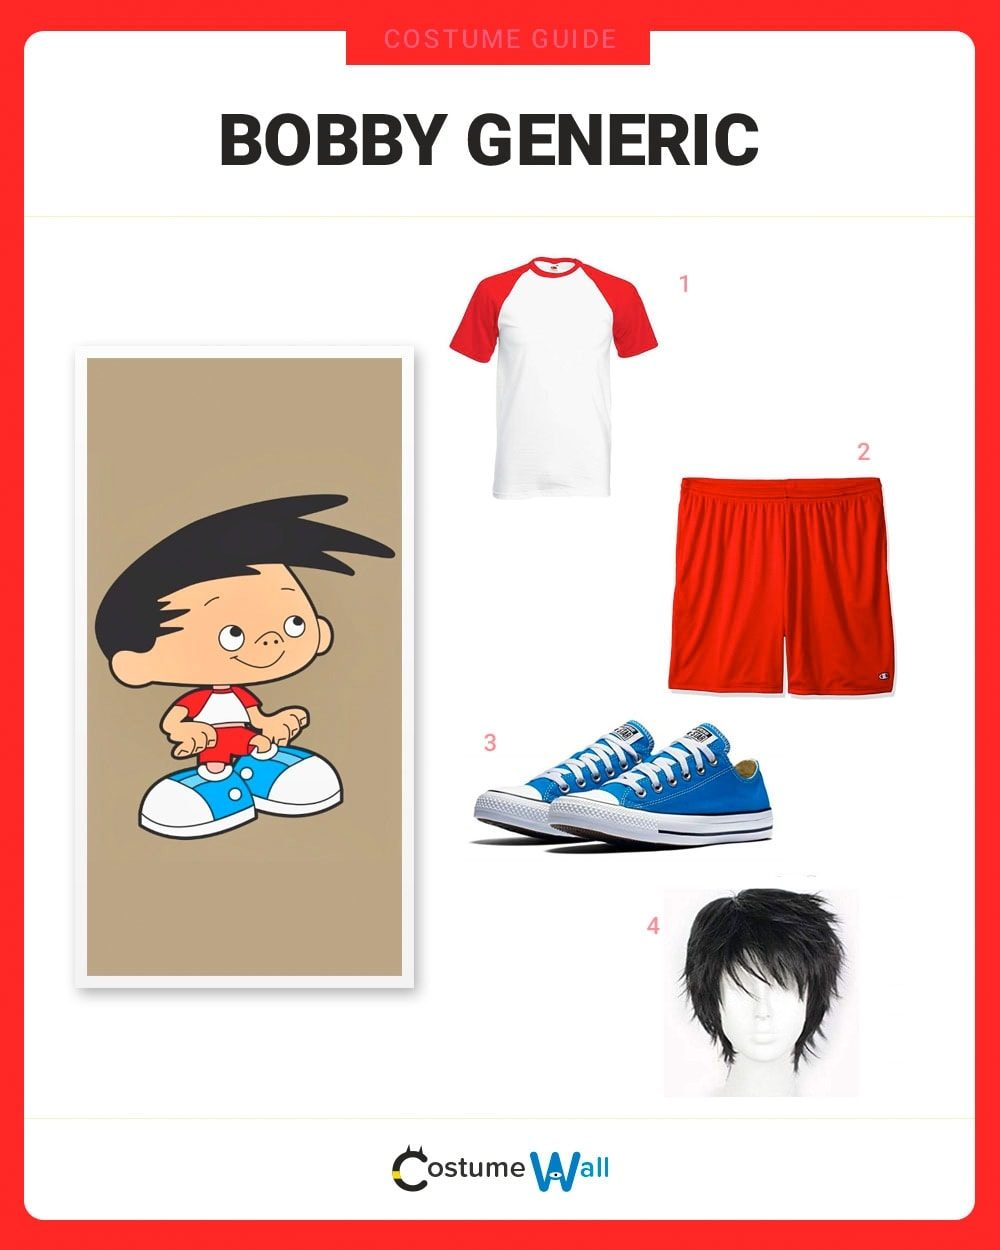 Bobby Generic Costume Guide